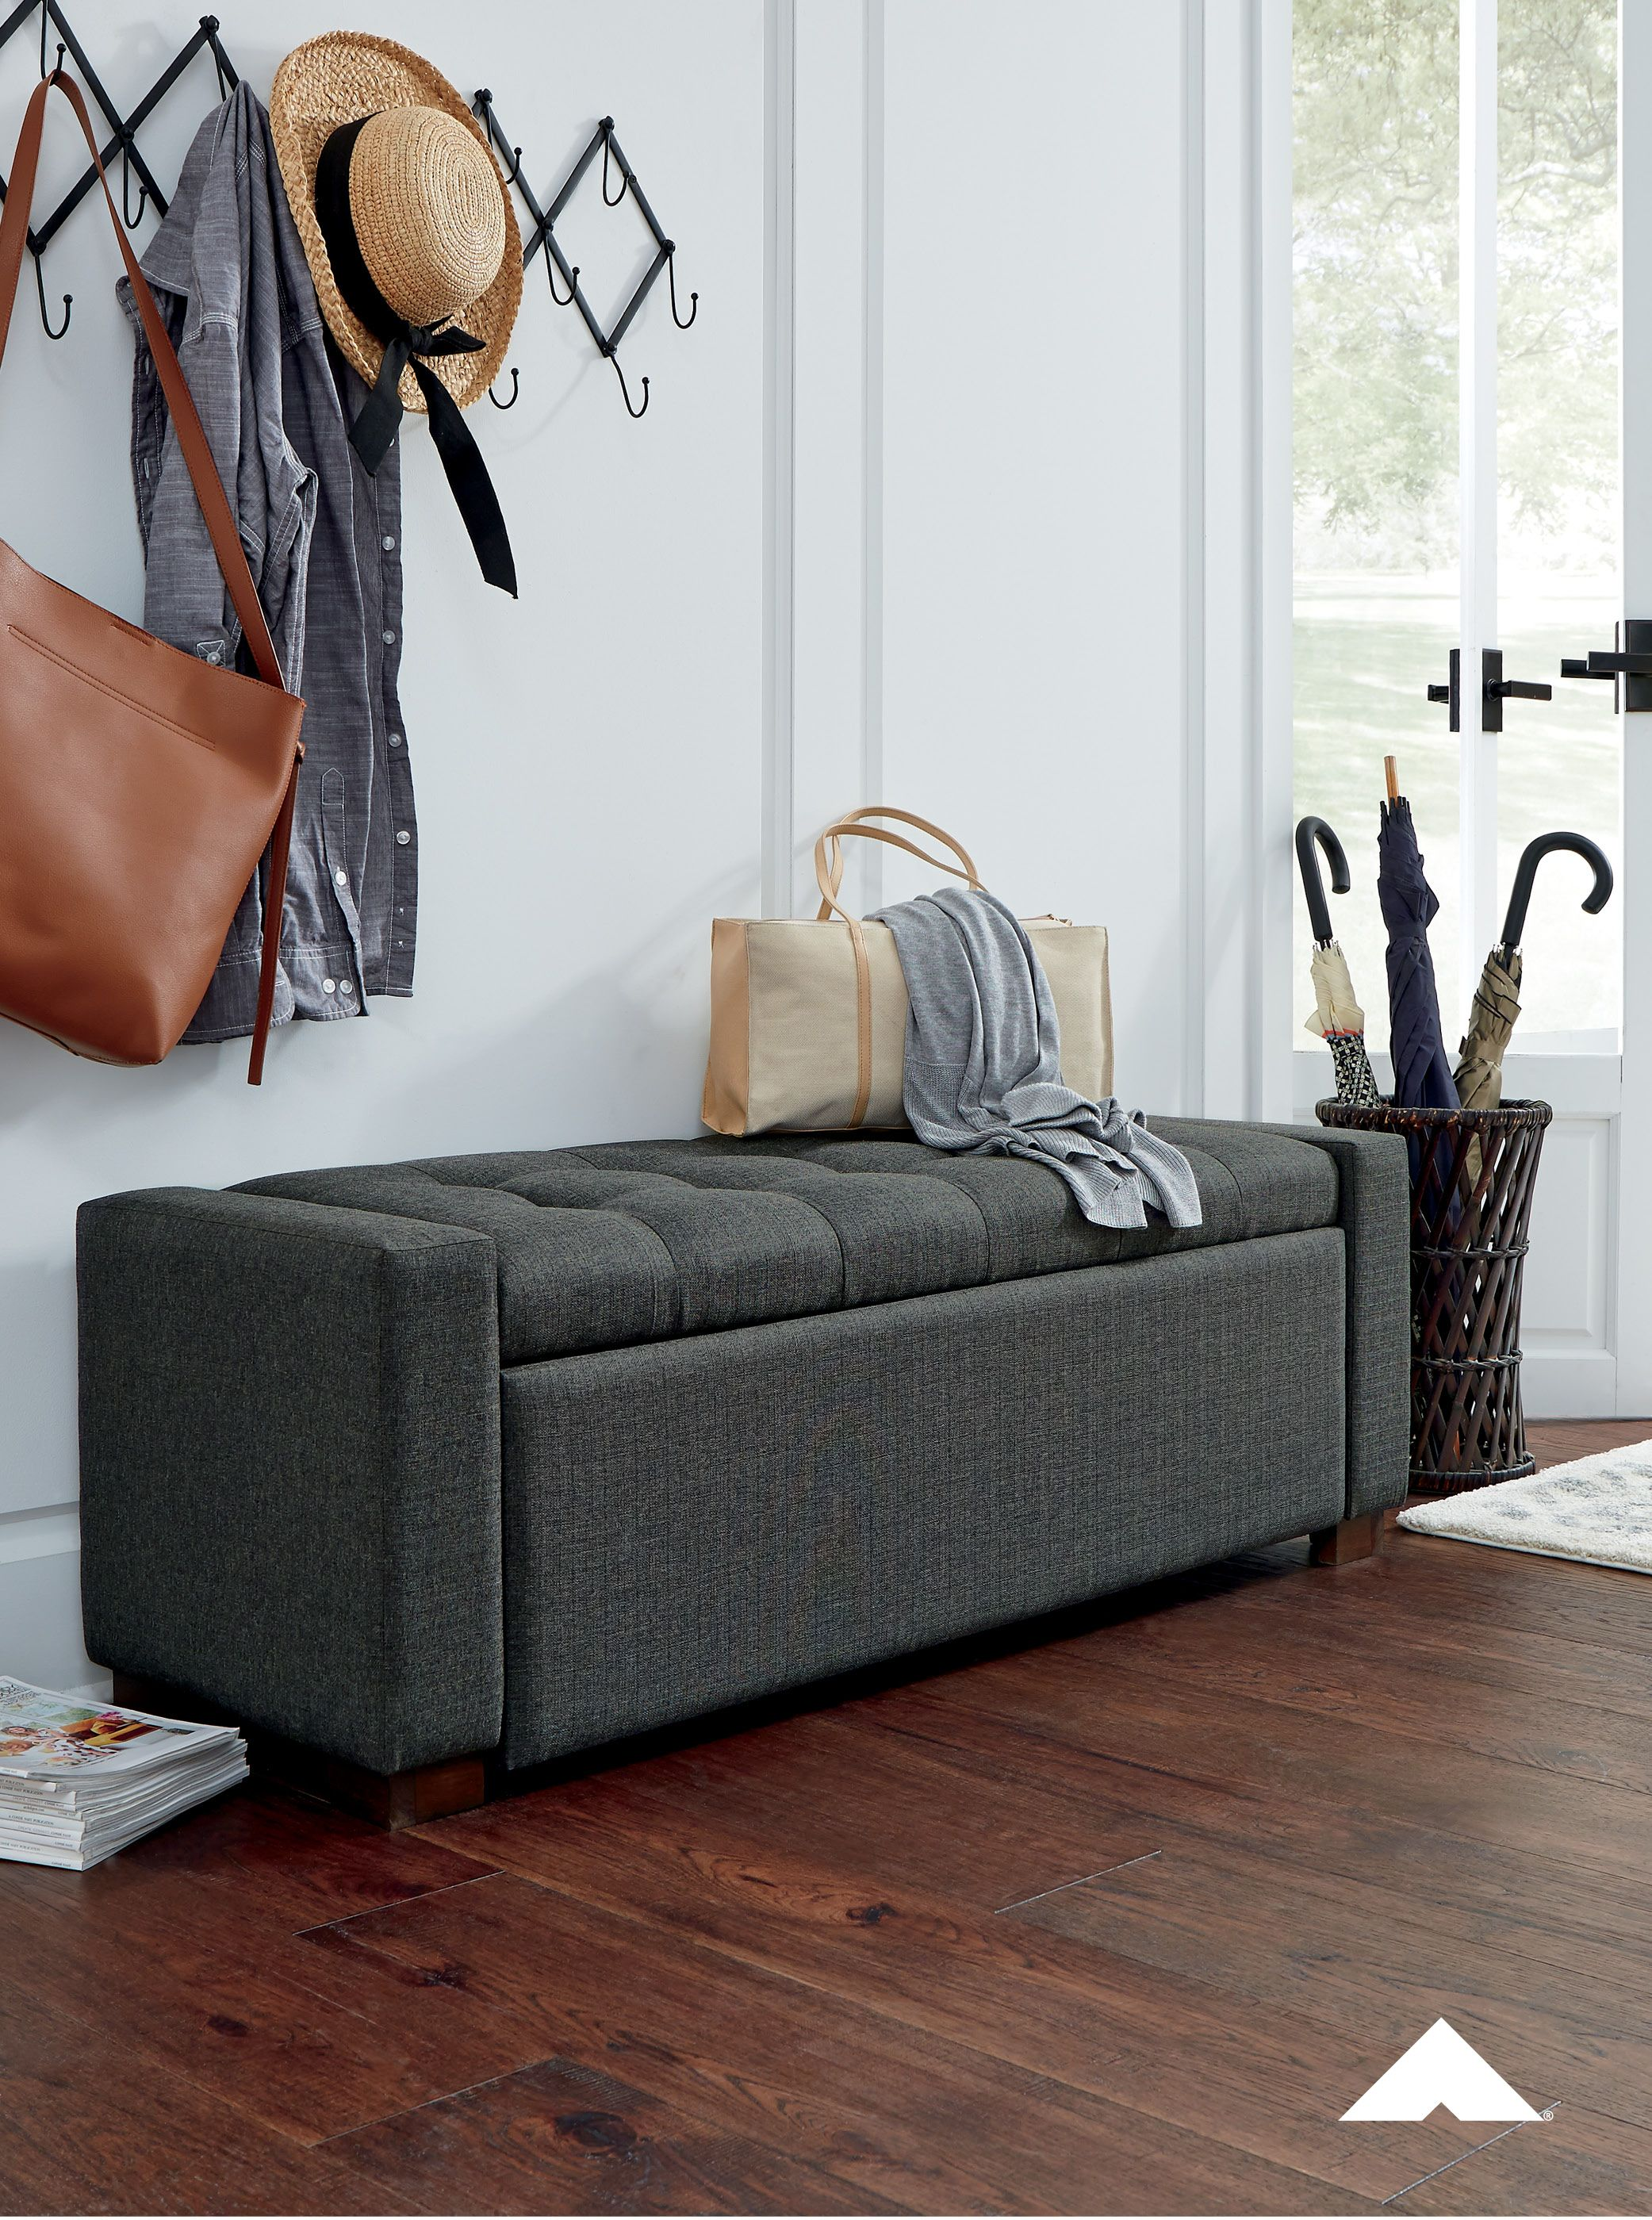 Cortwell Gray Storage Bench By Ashley Furniture Whether Gracing A Front Entry Or Living Room In 2020 Upholstered Storage Bench Upholstered Storage Grey Storage Bench